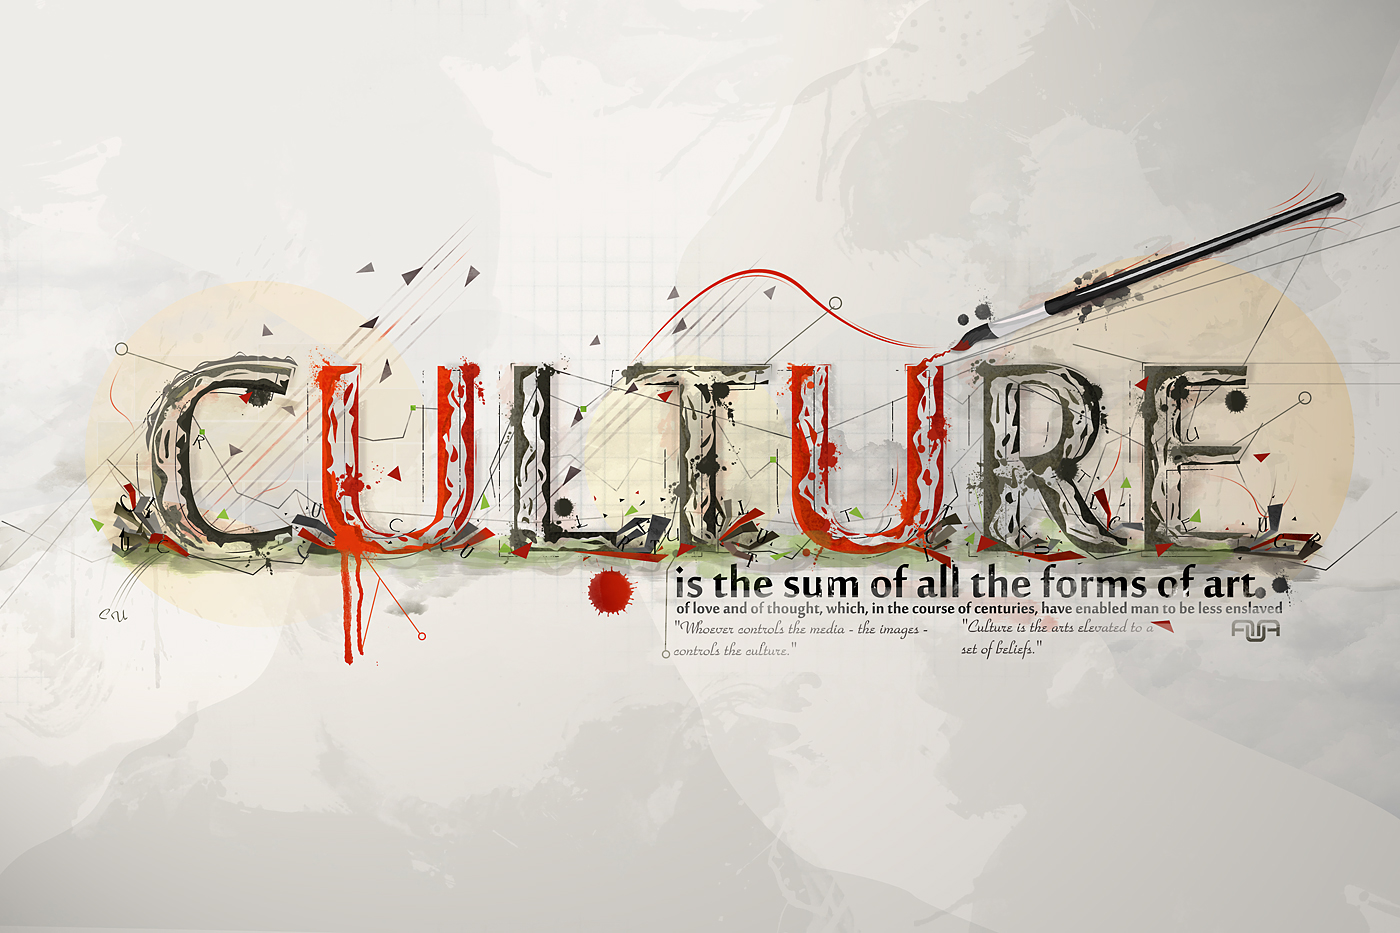 essay about culture different cultures